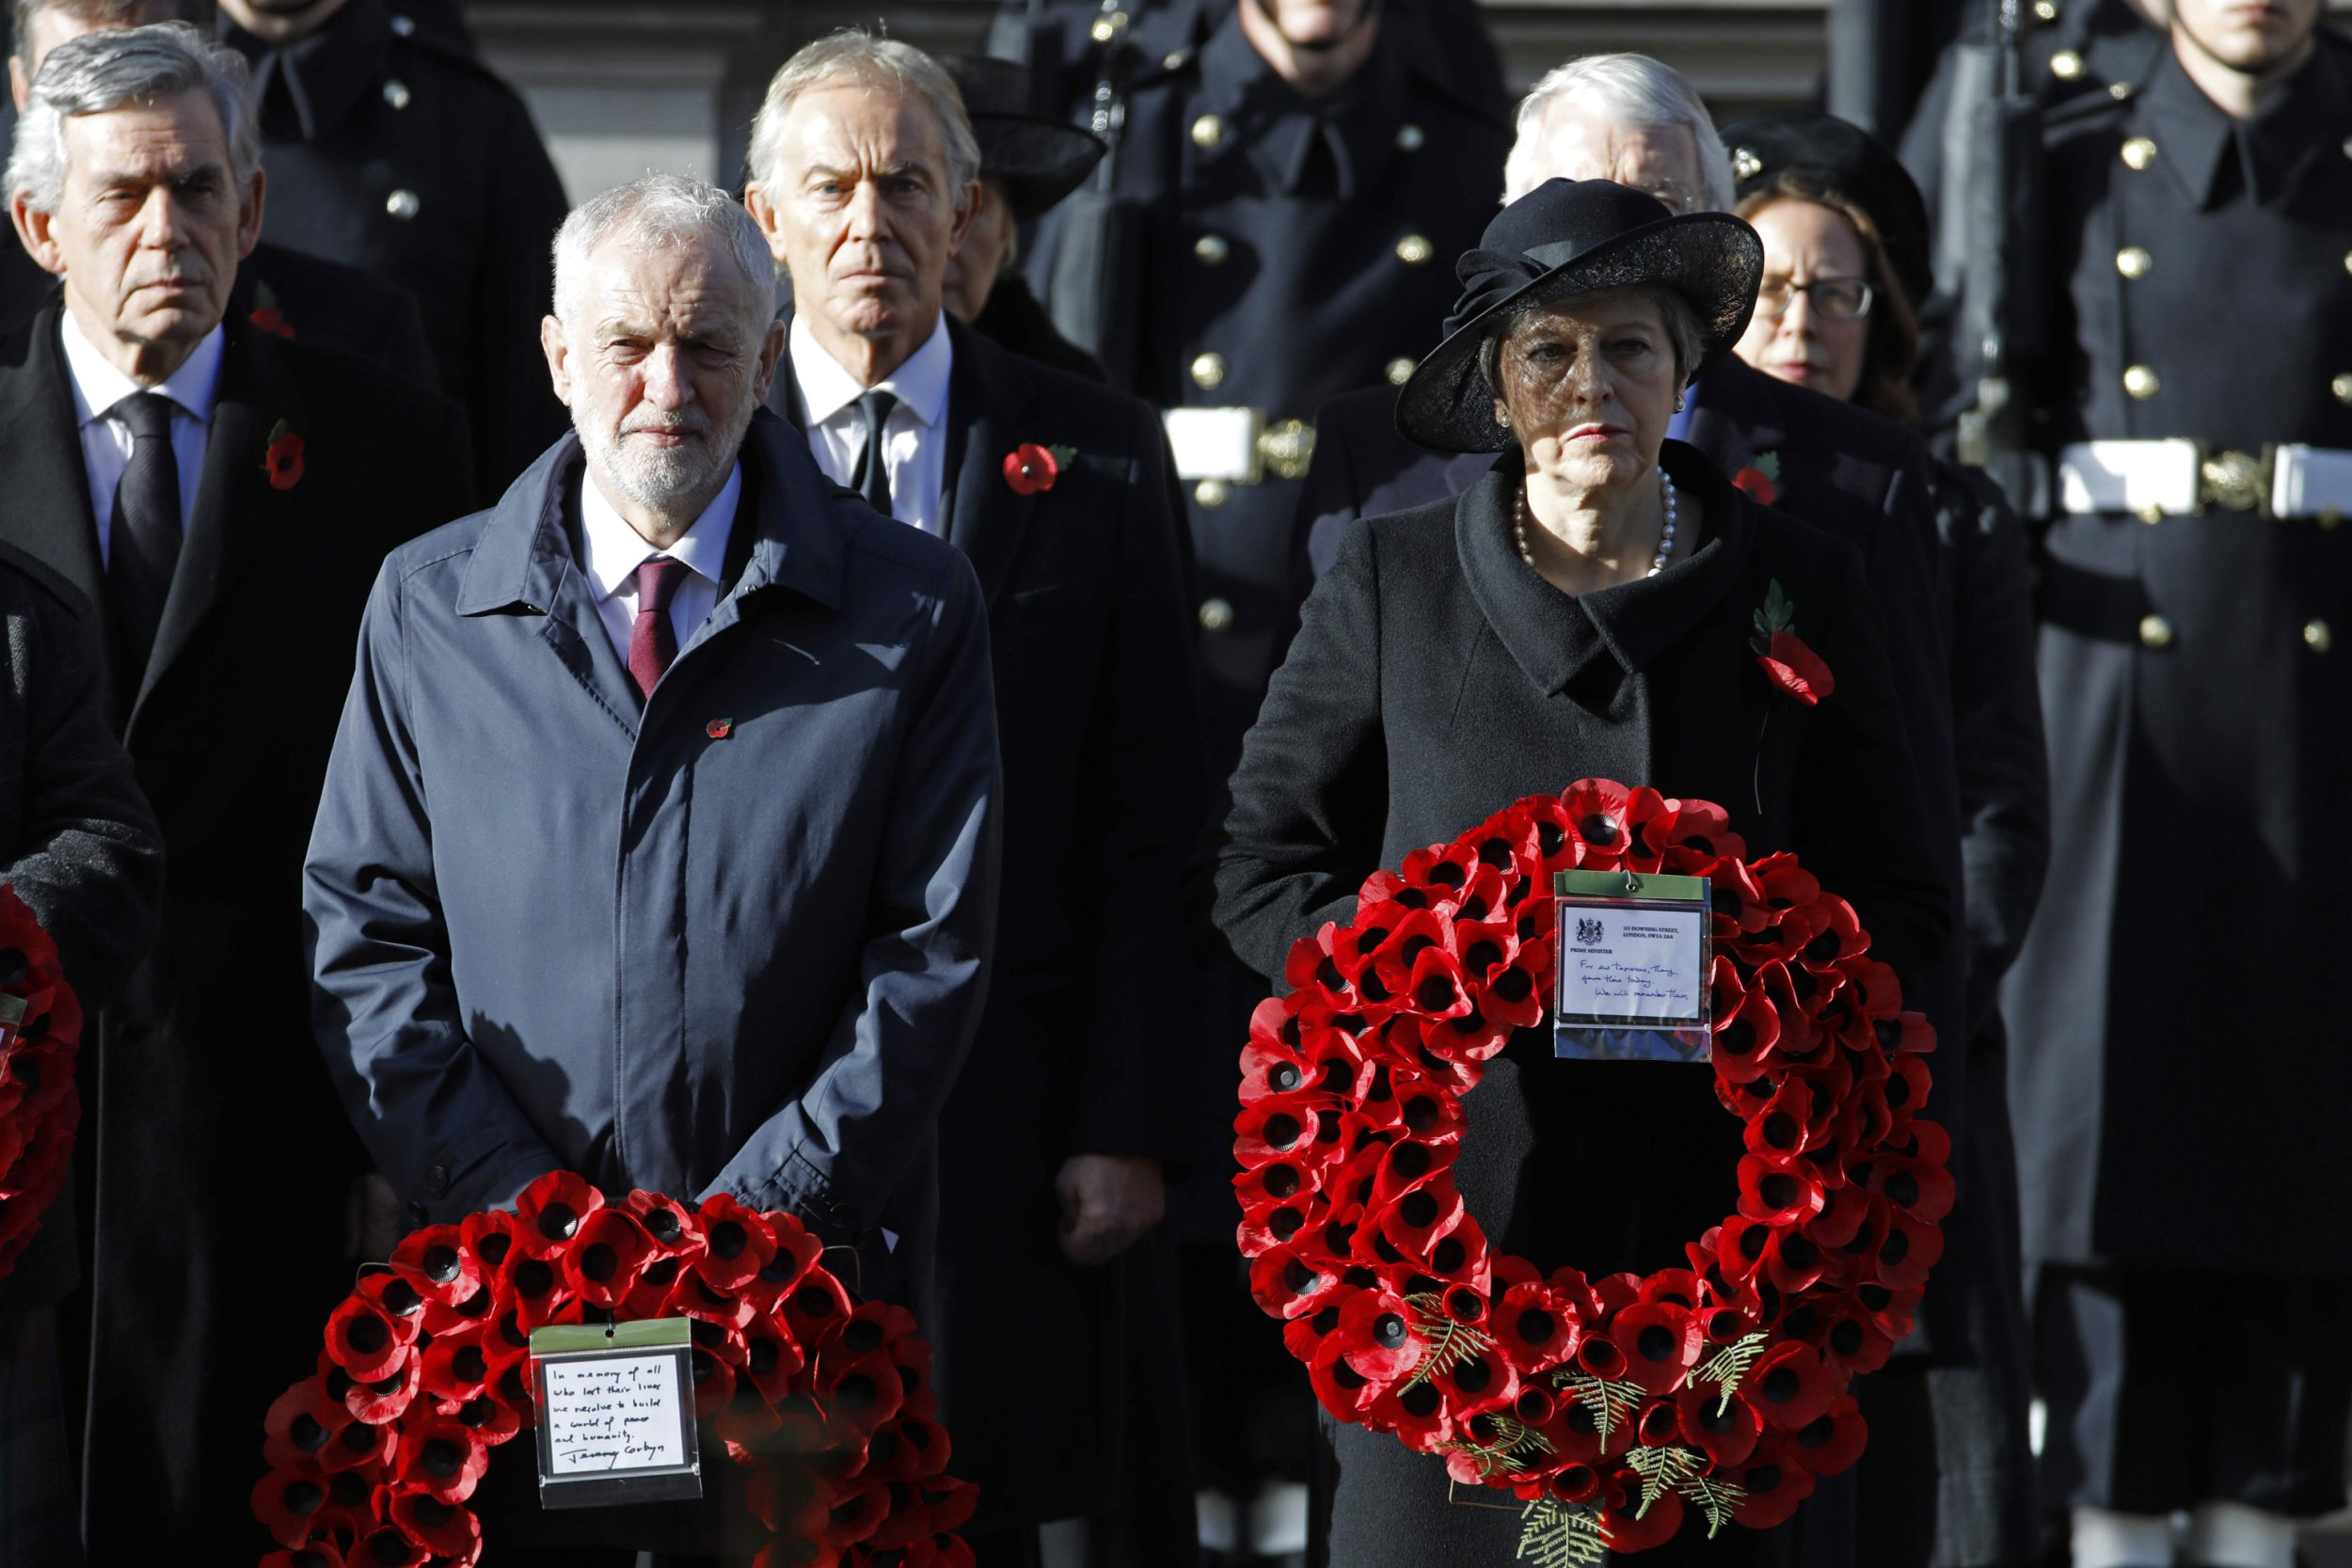 Jeremy Corbyn criticised for small poppy pin and 'hoodie' at Armistice Day service